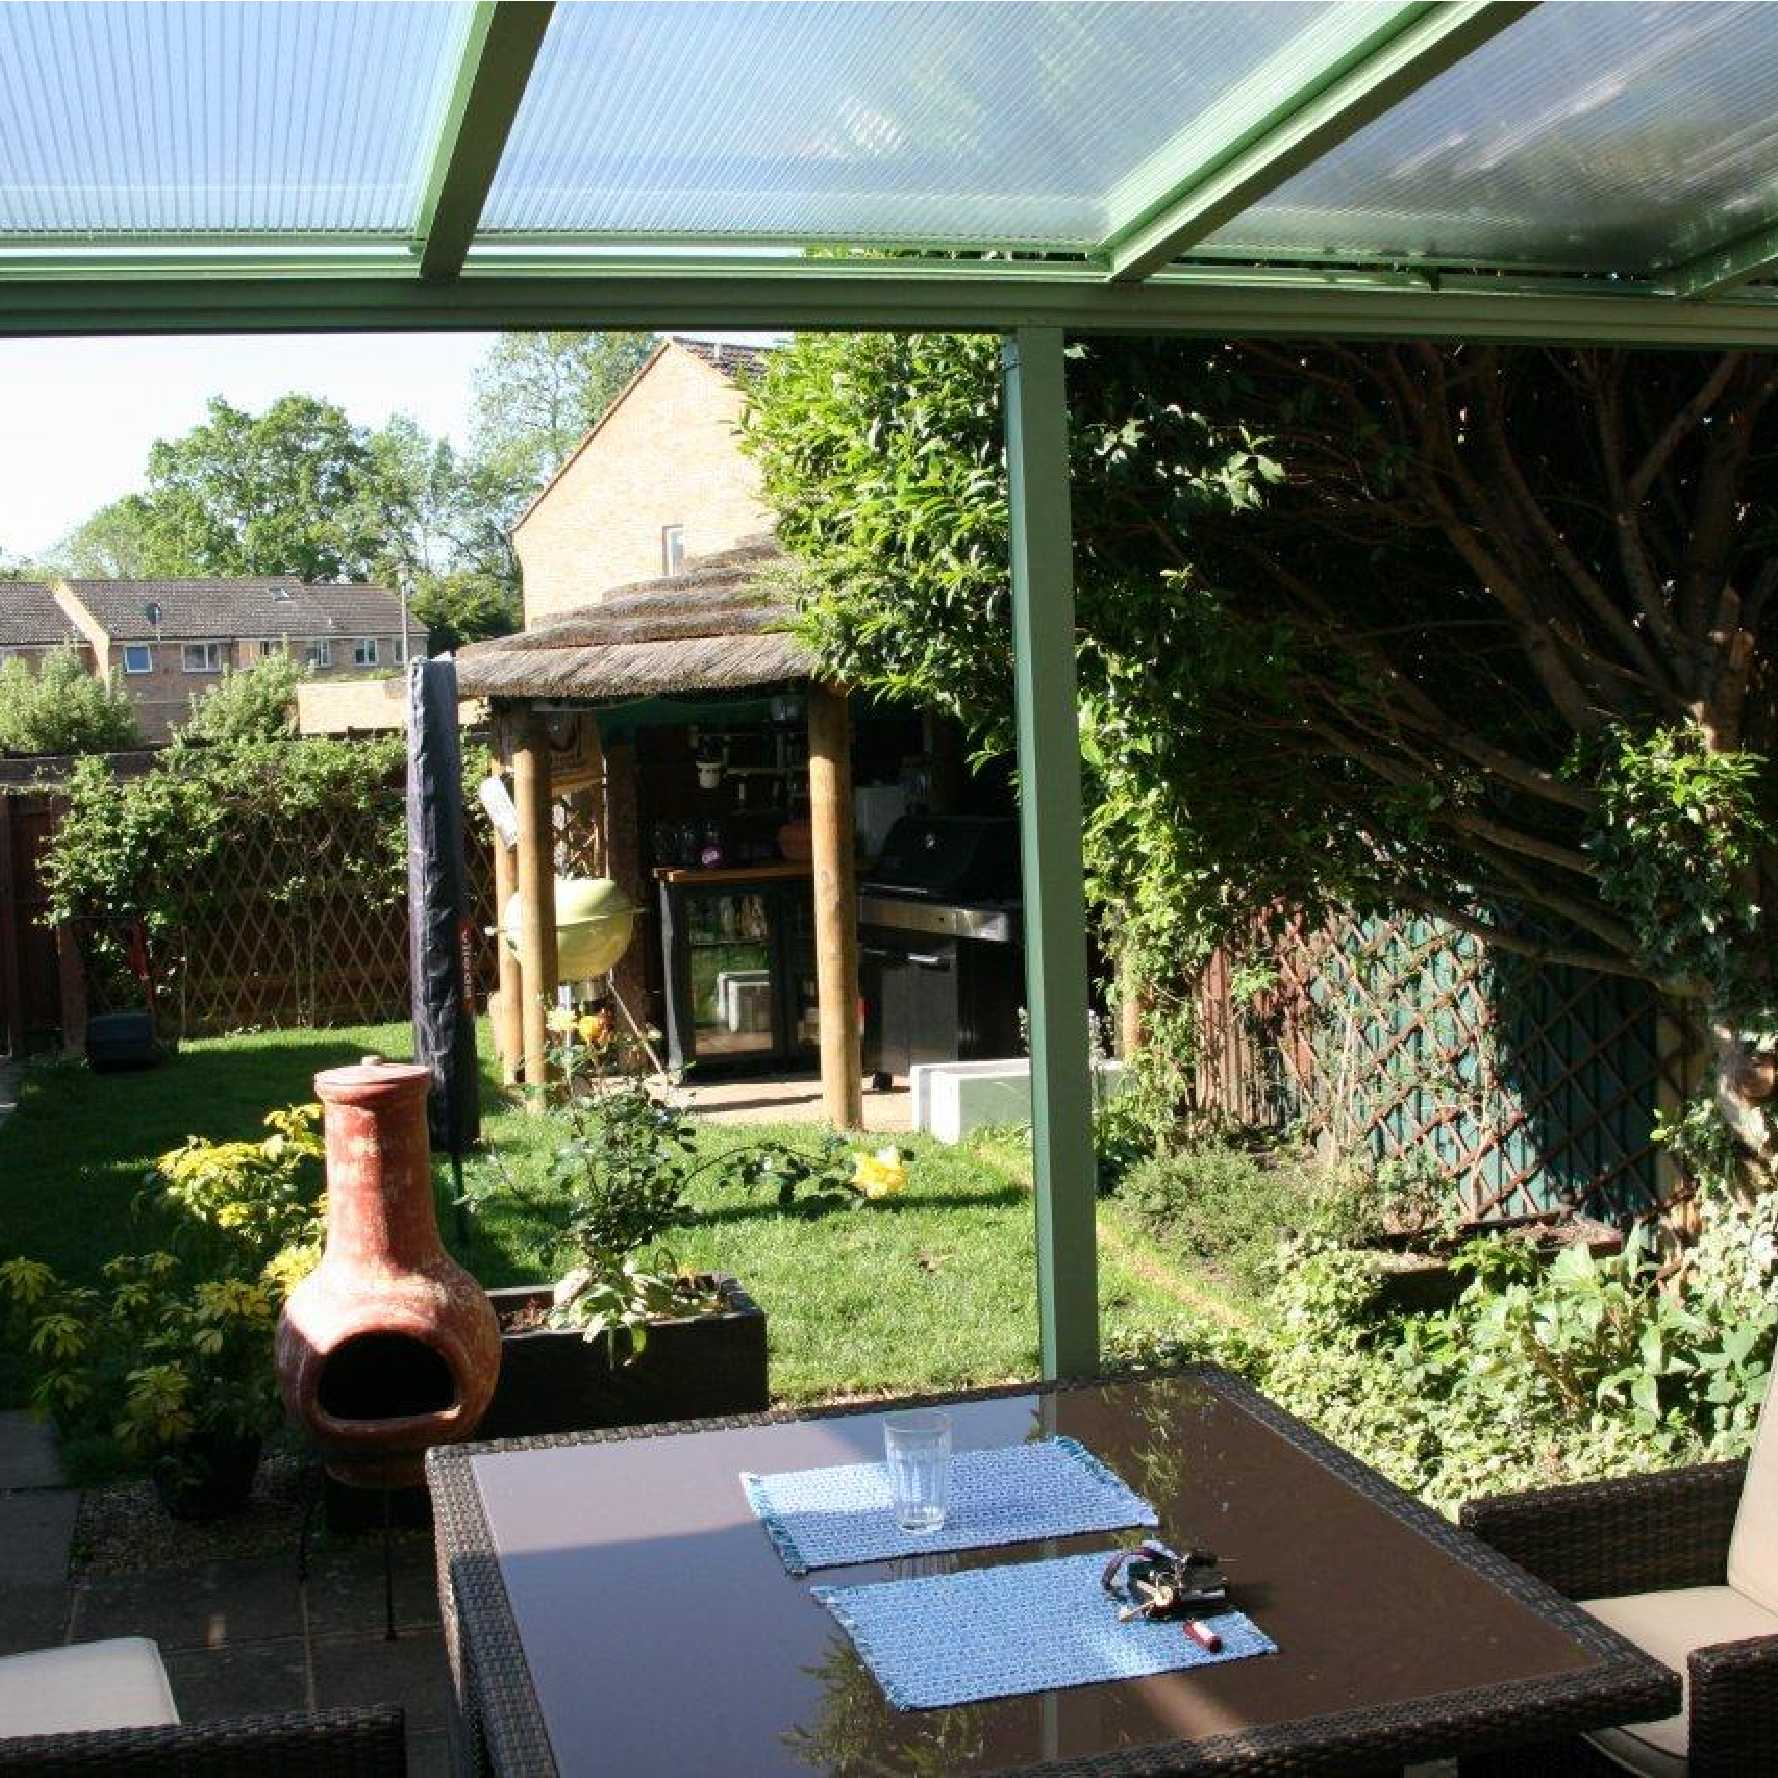 Affordable Omega Smart Lean-To Canopy with 16mm Polycarbonate Glazing - 12.0m (W) x 2.5m (P), (5) Supporting Posts